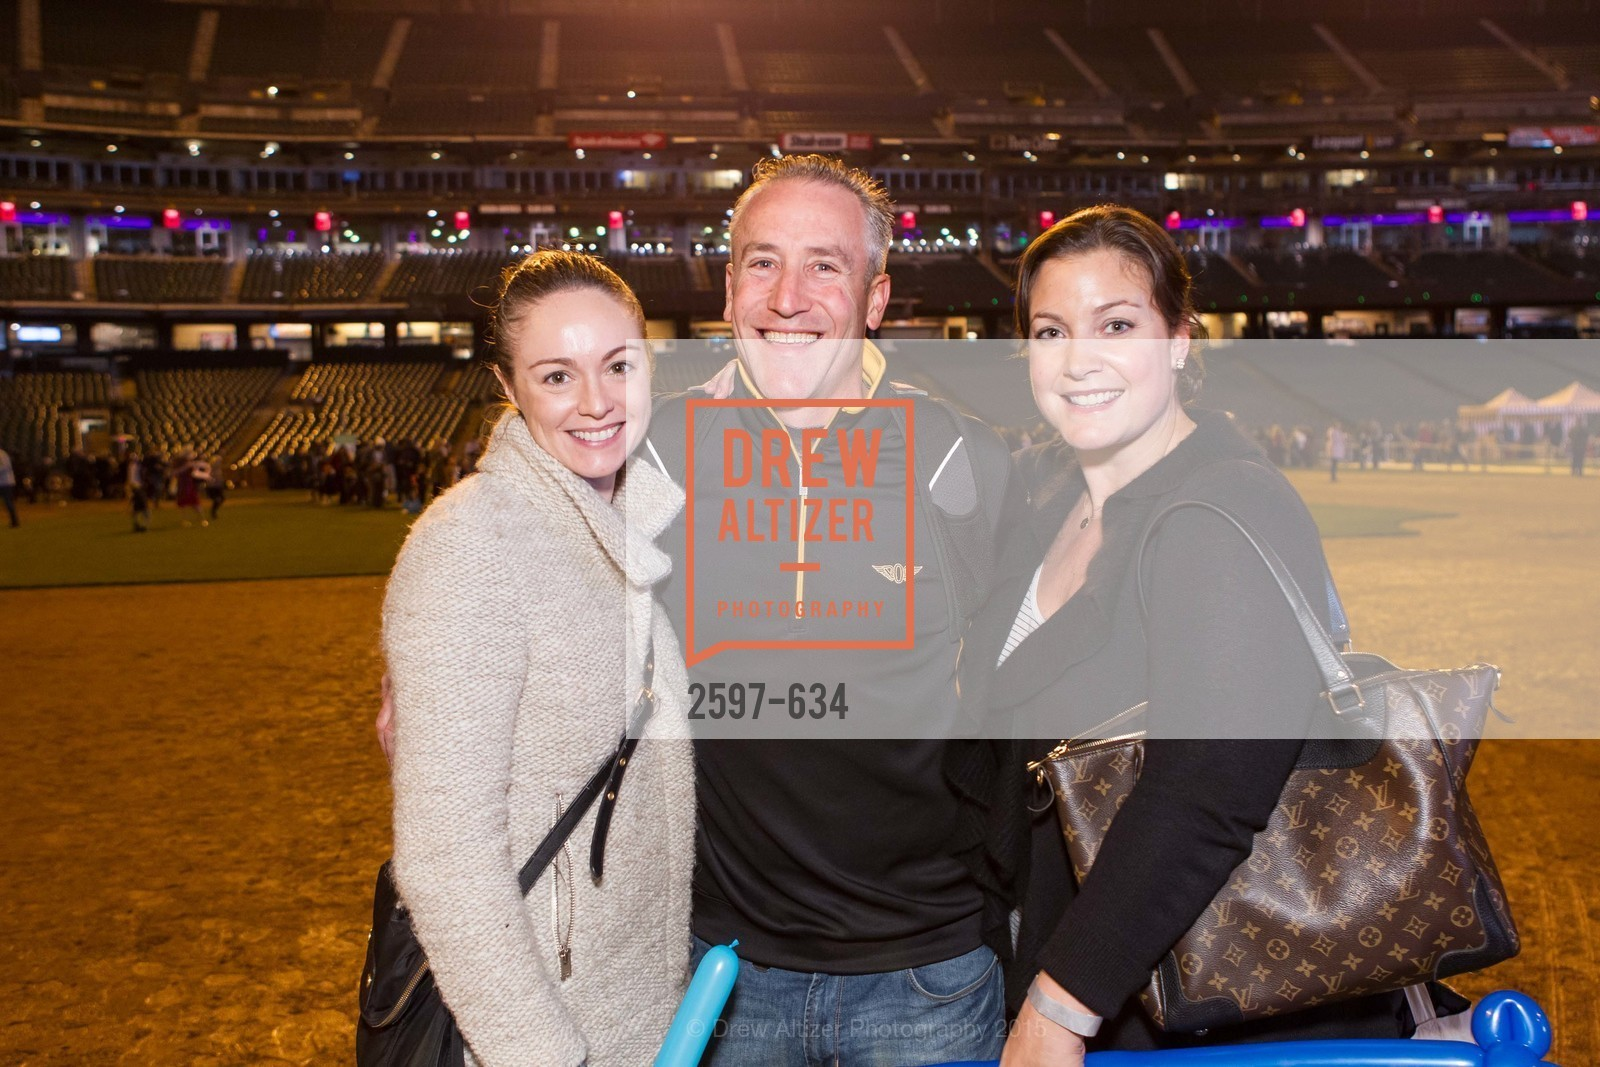 Veronica Bell, Brett McManigal, Kim McManigal, Holiday Heroes 2015, AT&T Park, December 7th, 2015,Drew Altizer, Drew Altizer Photography, full-service agency, private events, San Francisco photographer, photographer california